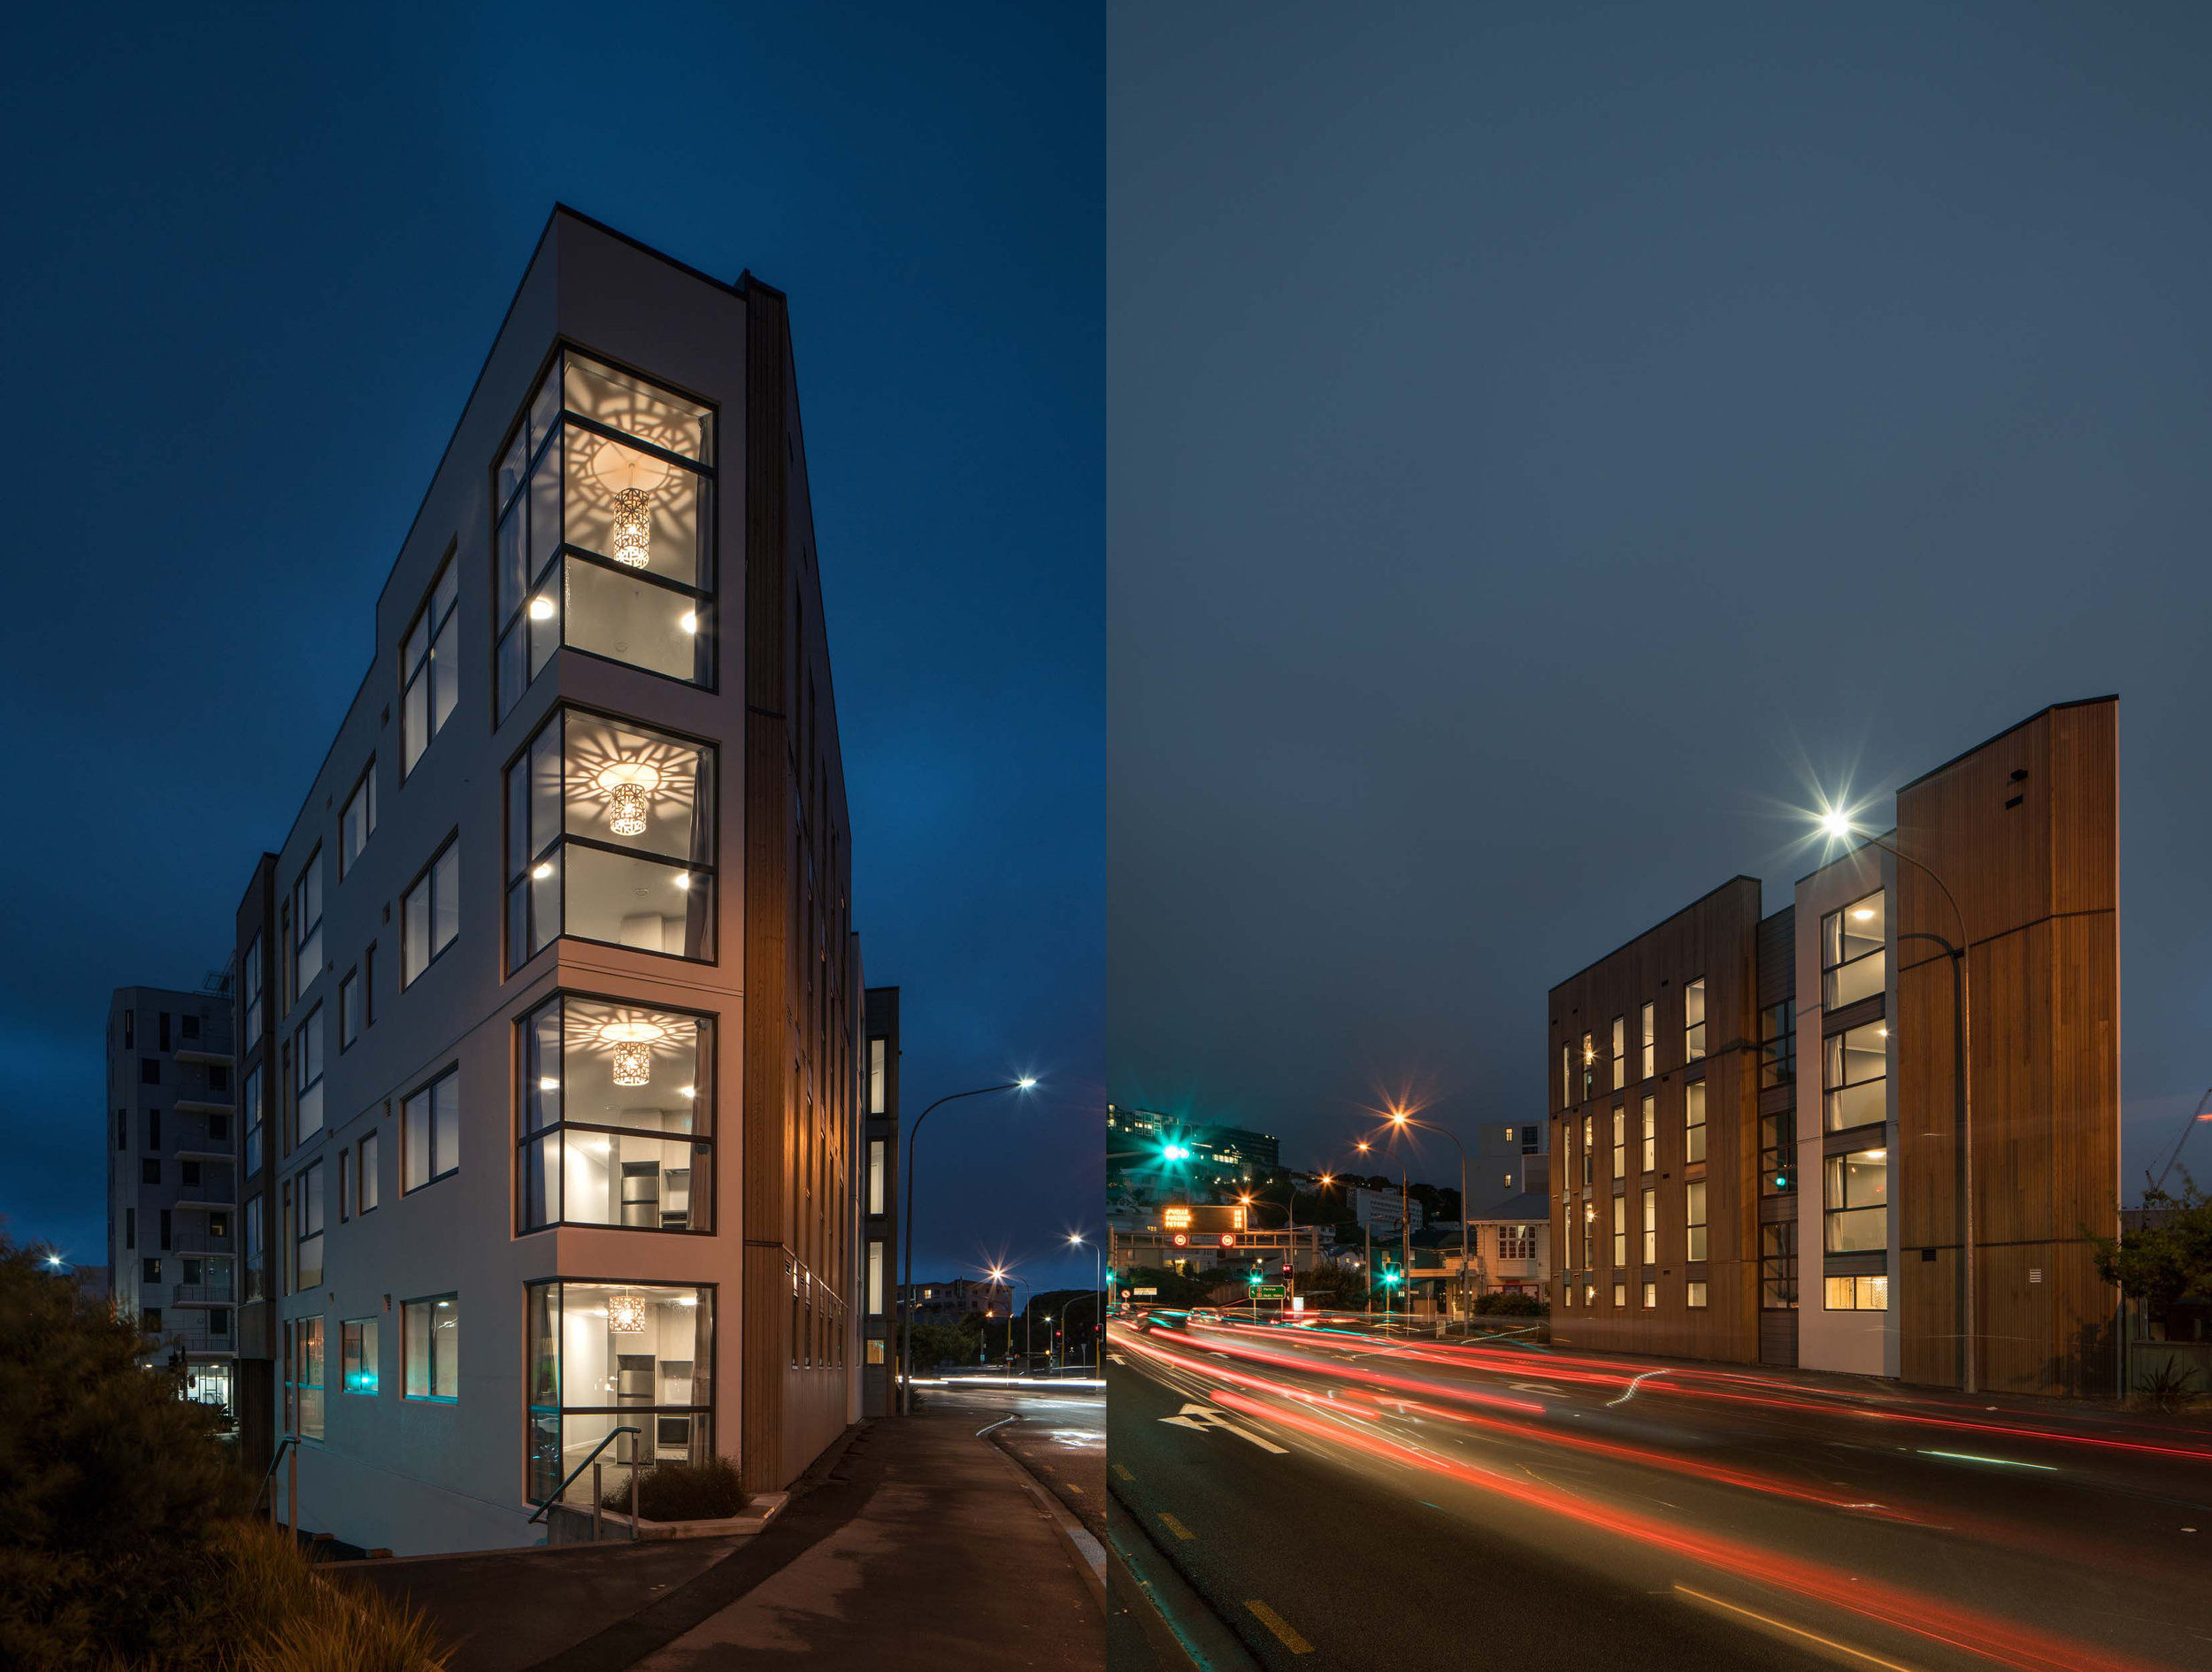 83 ABEL SMITH STREET BY ARCHAUS. EXTERIOR NIGHT SHOTS.